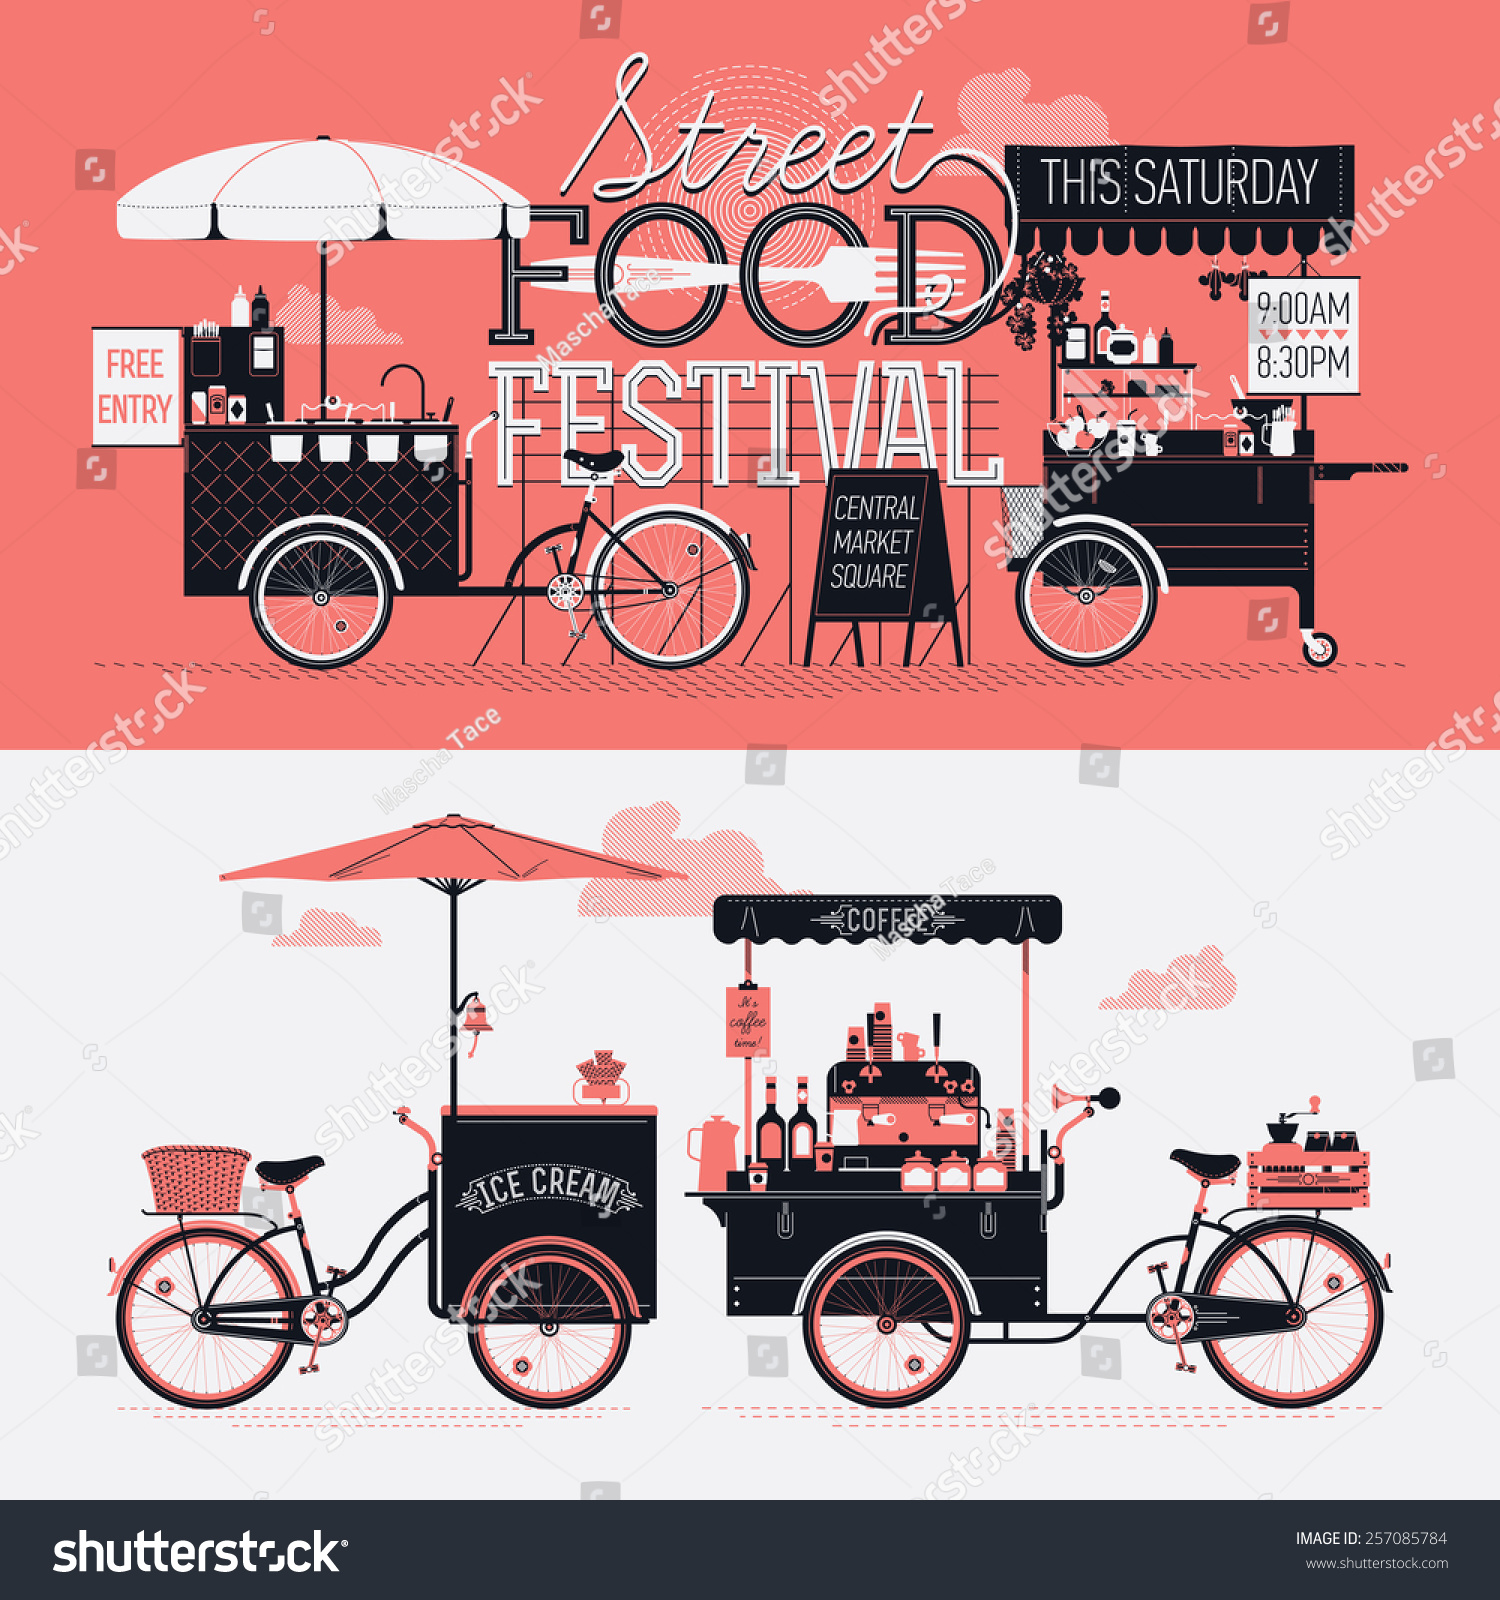 Poster design elements - Street Food Festival Event Vector Graphic Poster Flyer Or Horizontal Banner Design Elements With Retro